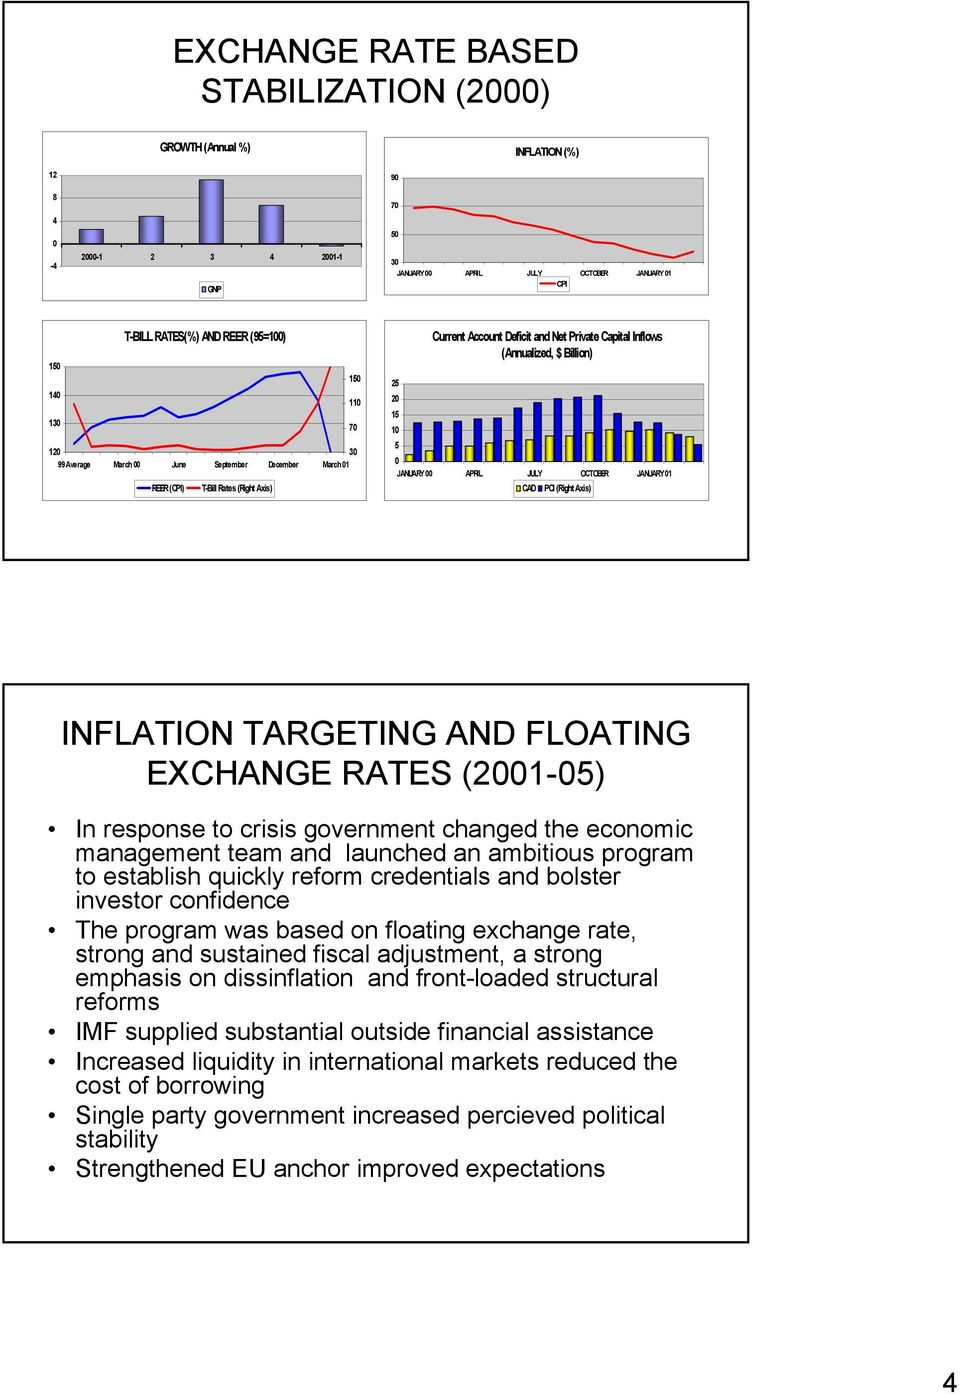 JANUARY 1 CAD PCI (Right Axis) INFLATION TARGETING AND FLOATING EXCHANGE RATES (21-) In response to crisis government changed the economic management team and launched an ambitious program to